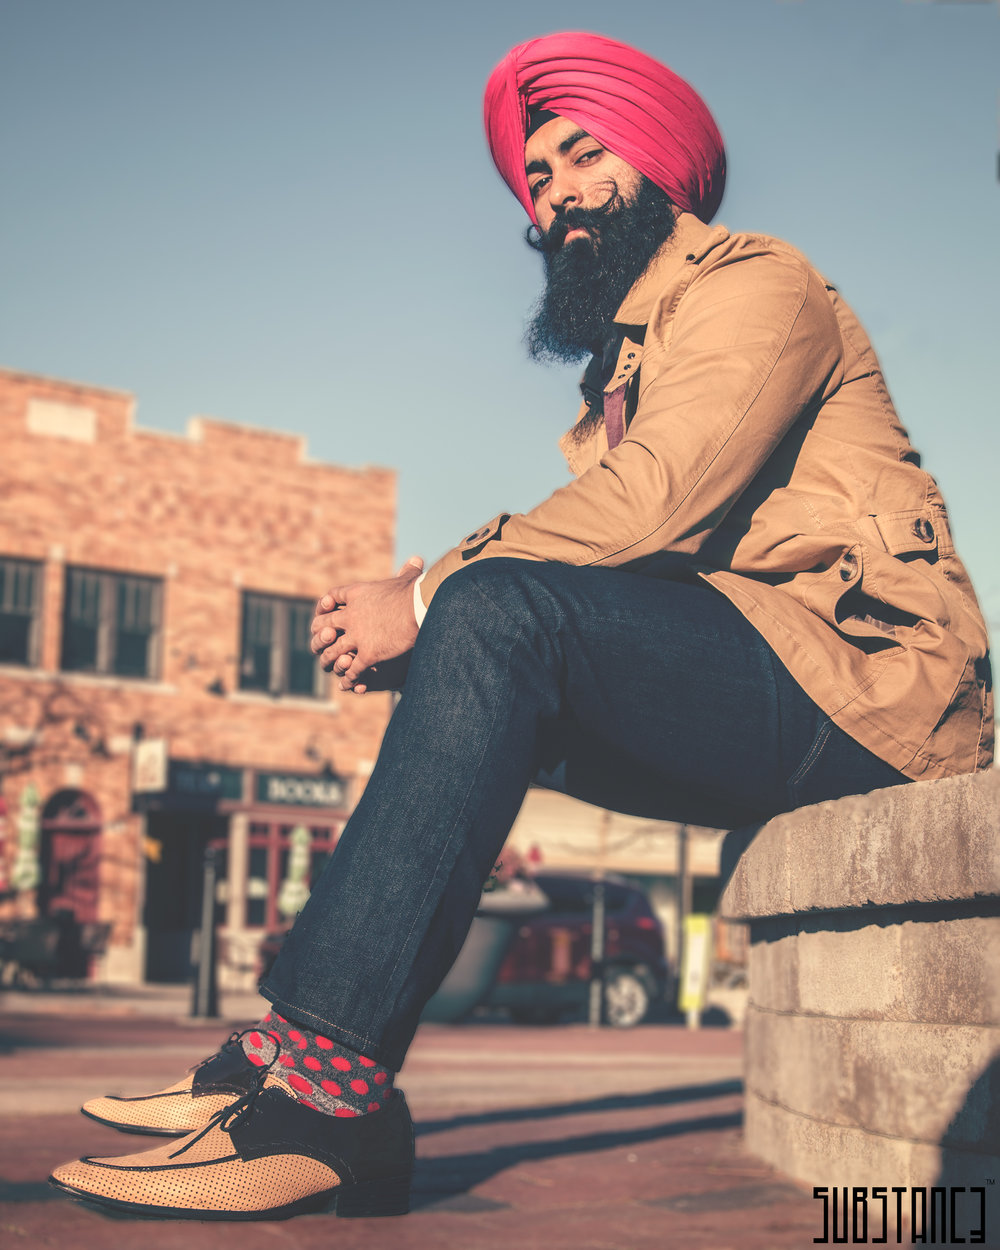 "Credit: Substanc3 Media  "" Don't be the majority. And as always, keep hustling ."" - Jaspreet Singh"